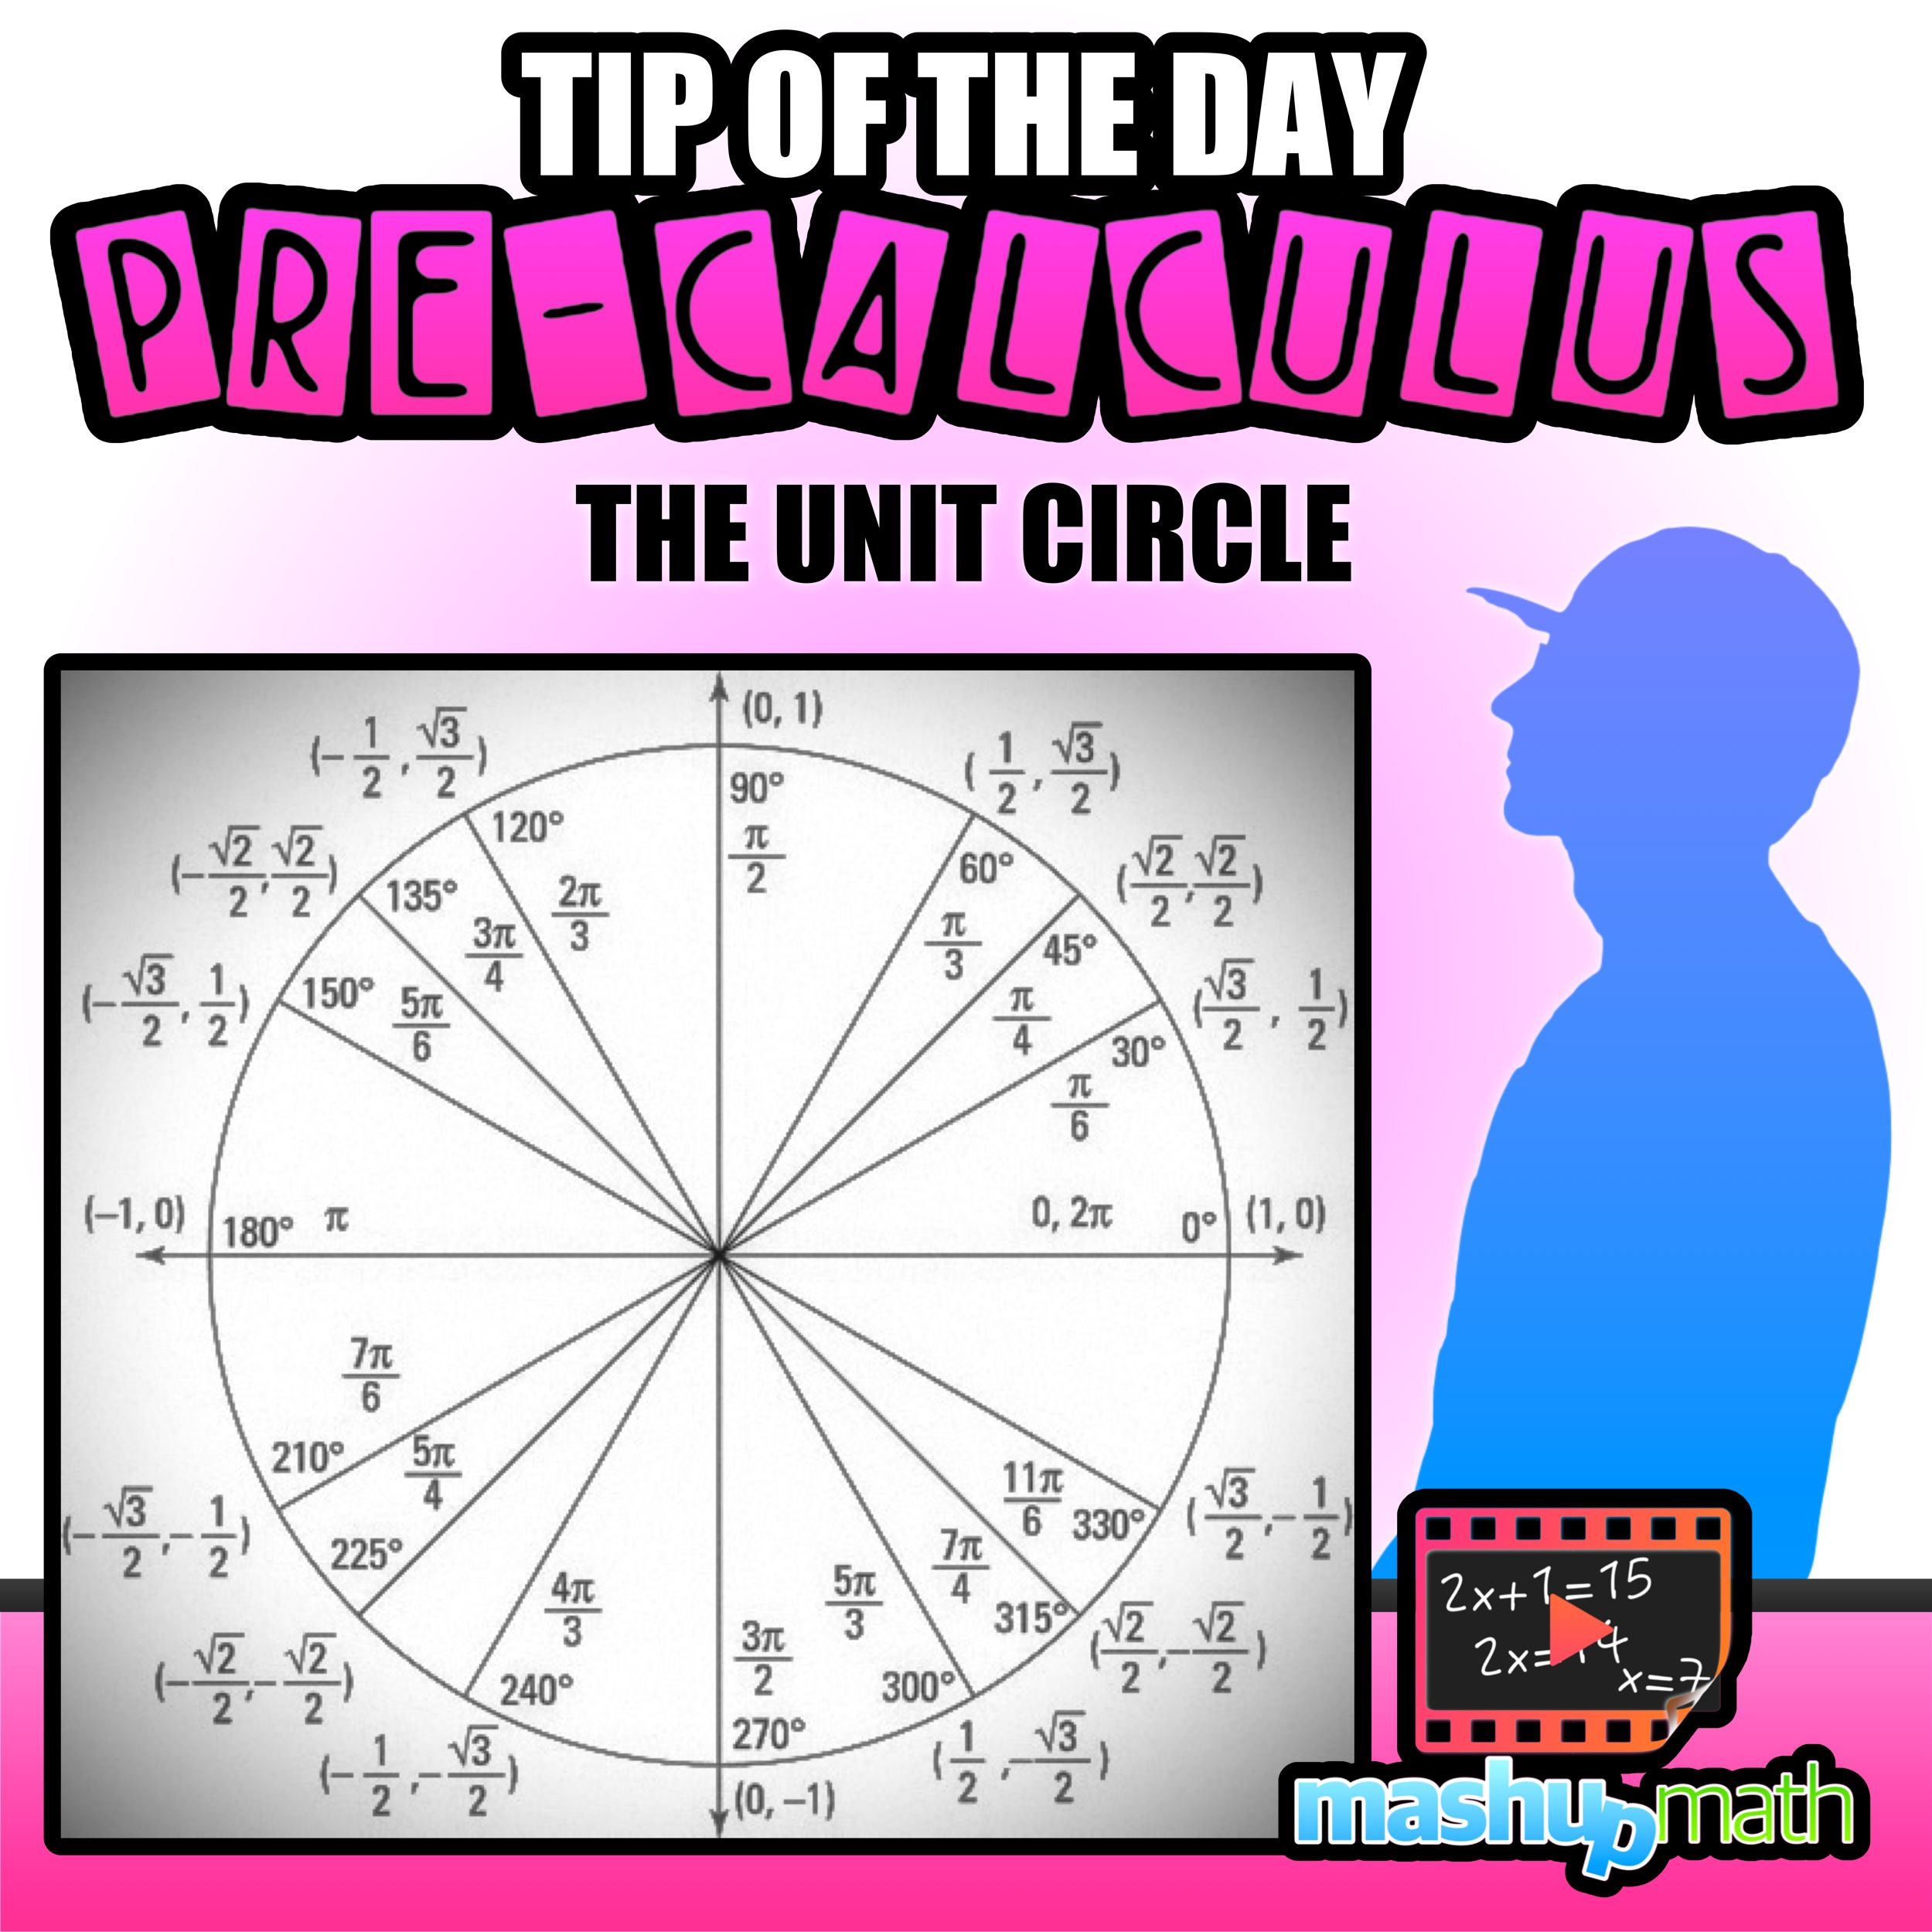 Do You Know The Unit Circle For More Daily Math Tips Follow Mashupmath On Instagram Education Math Daily Math Free Math Resources